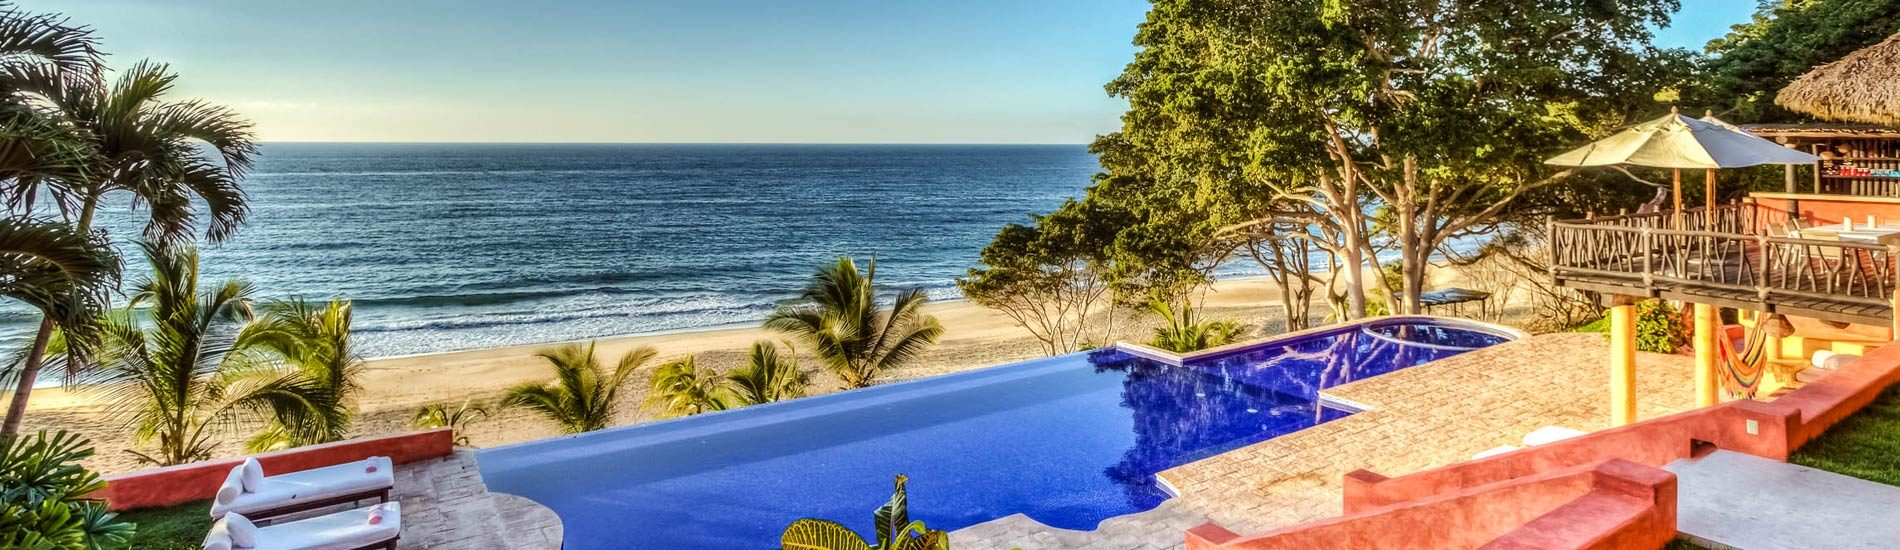 Casa Mis Amores Sayulita Villas By Journey Mexico